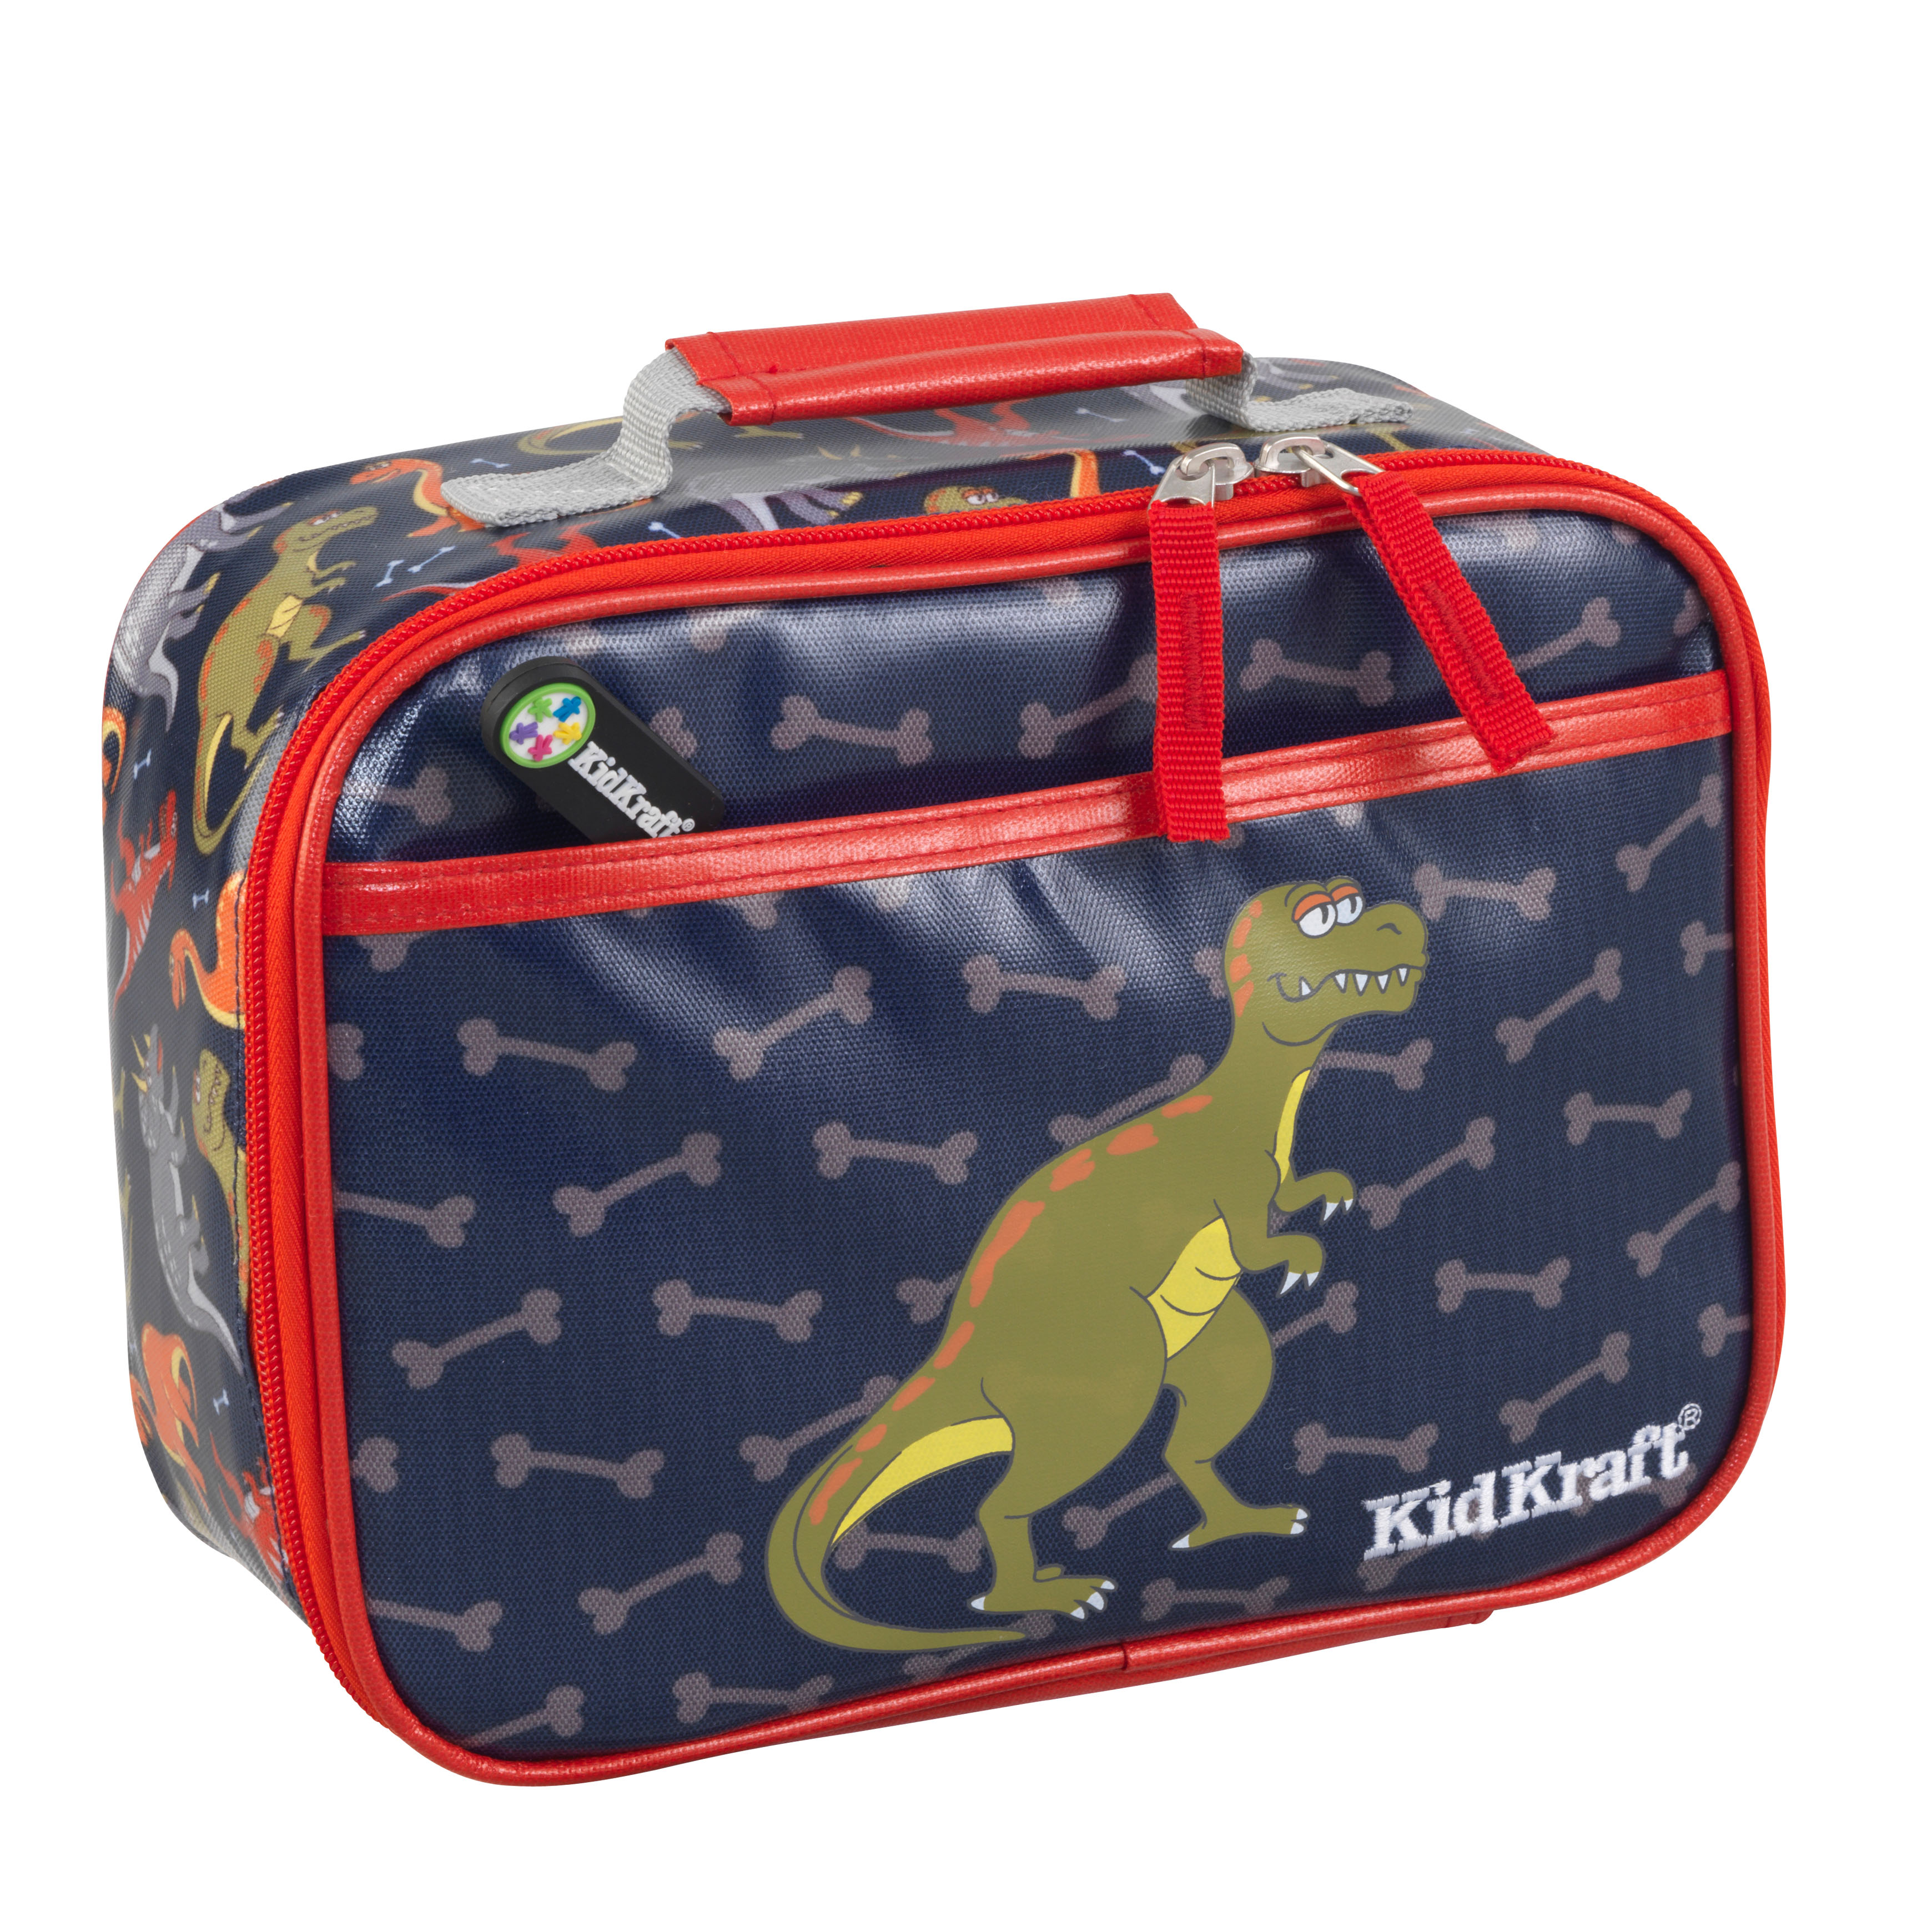 KidKraft Lunch Box - Dinosaur